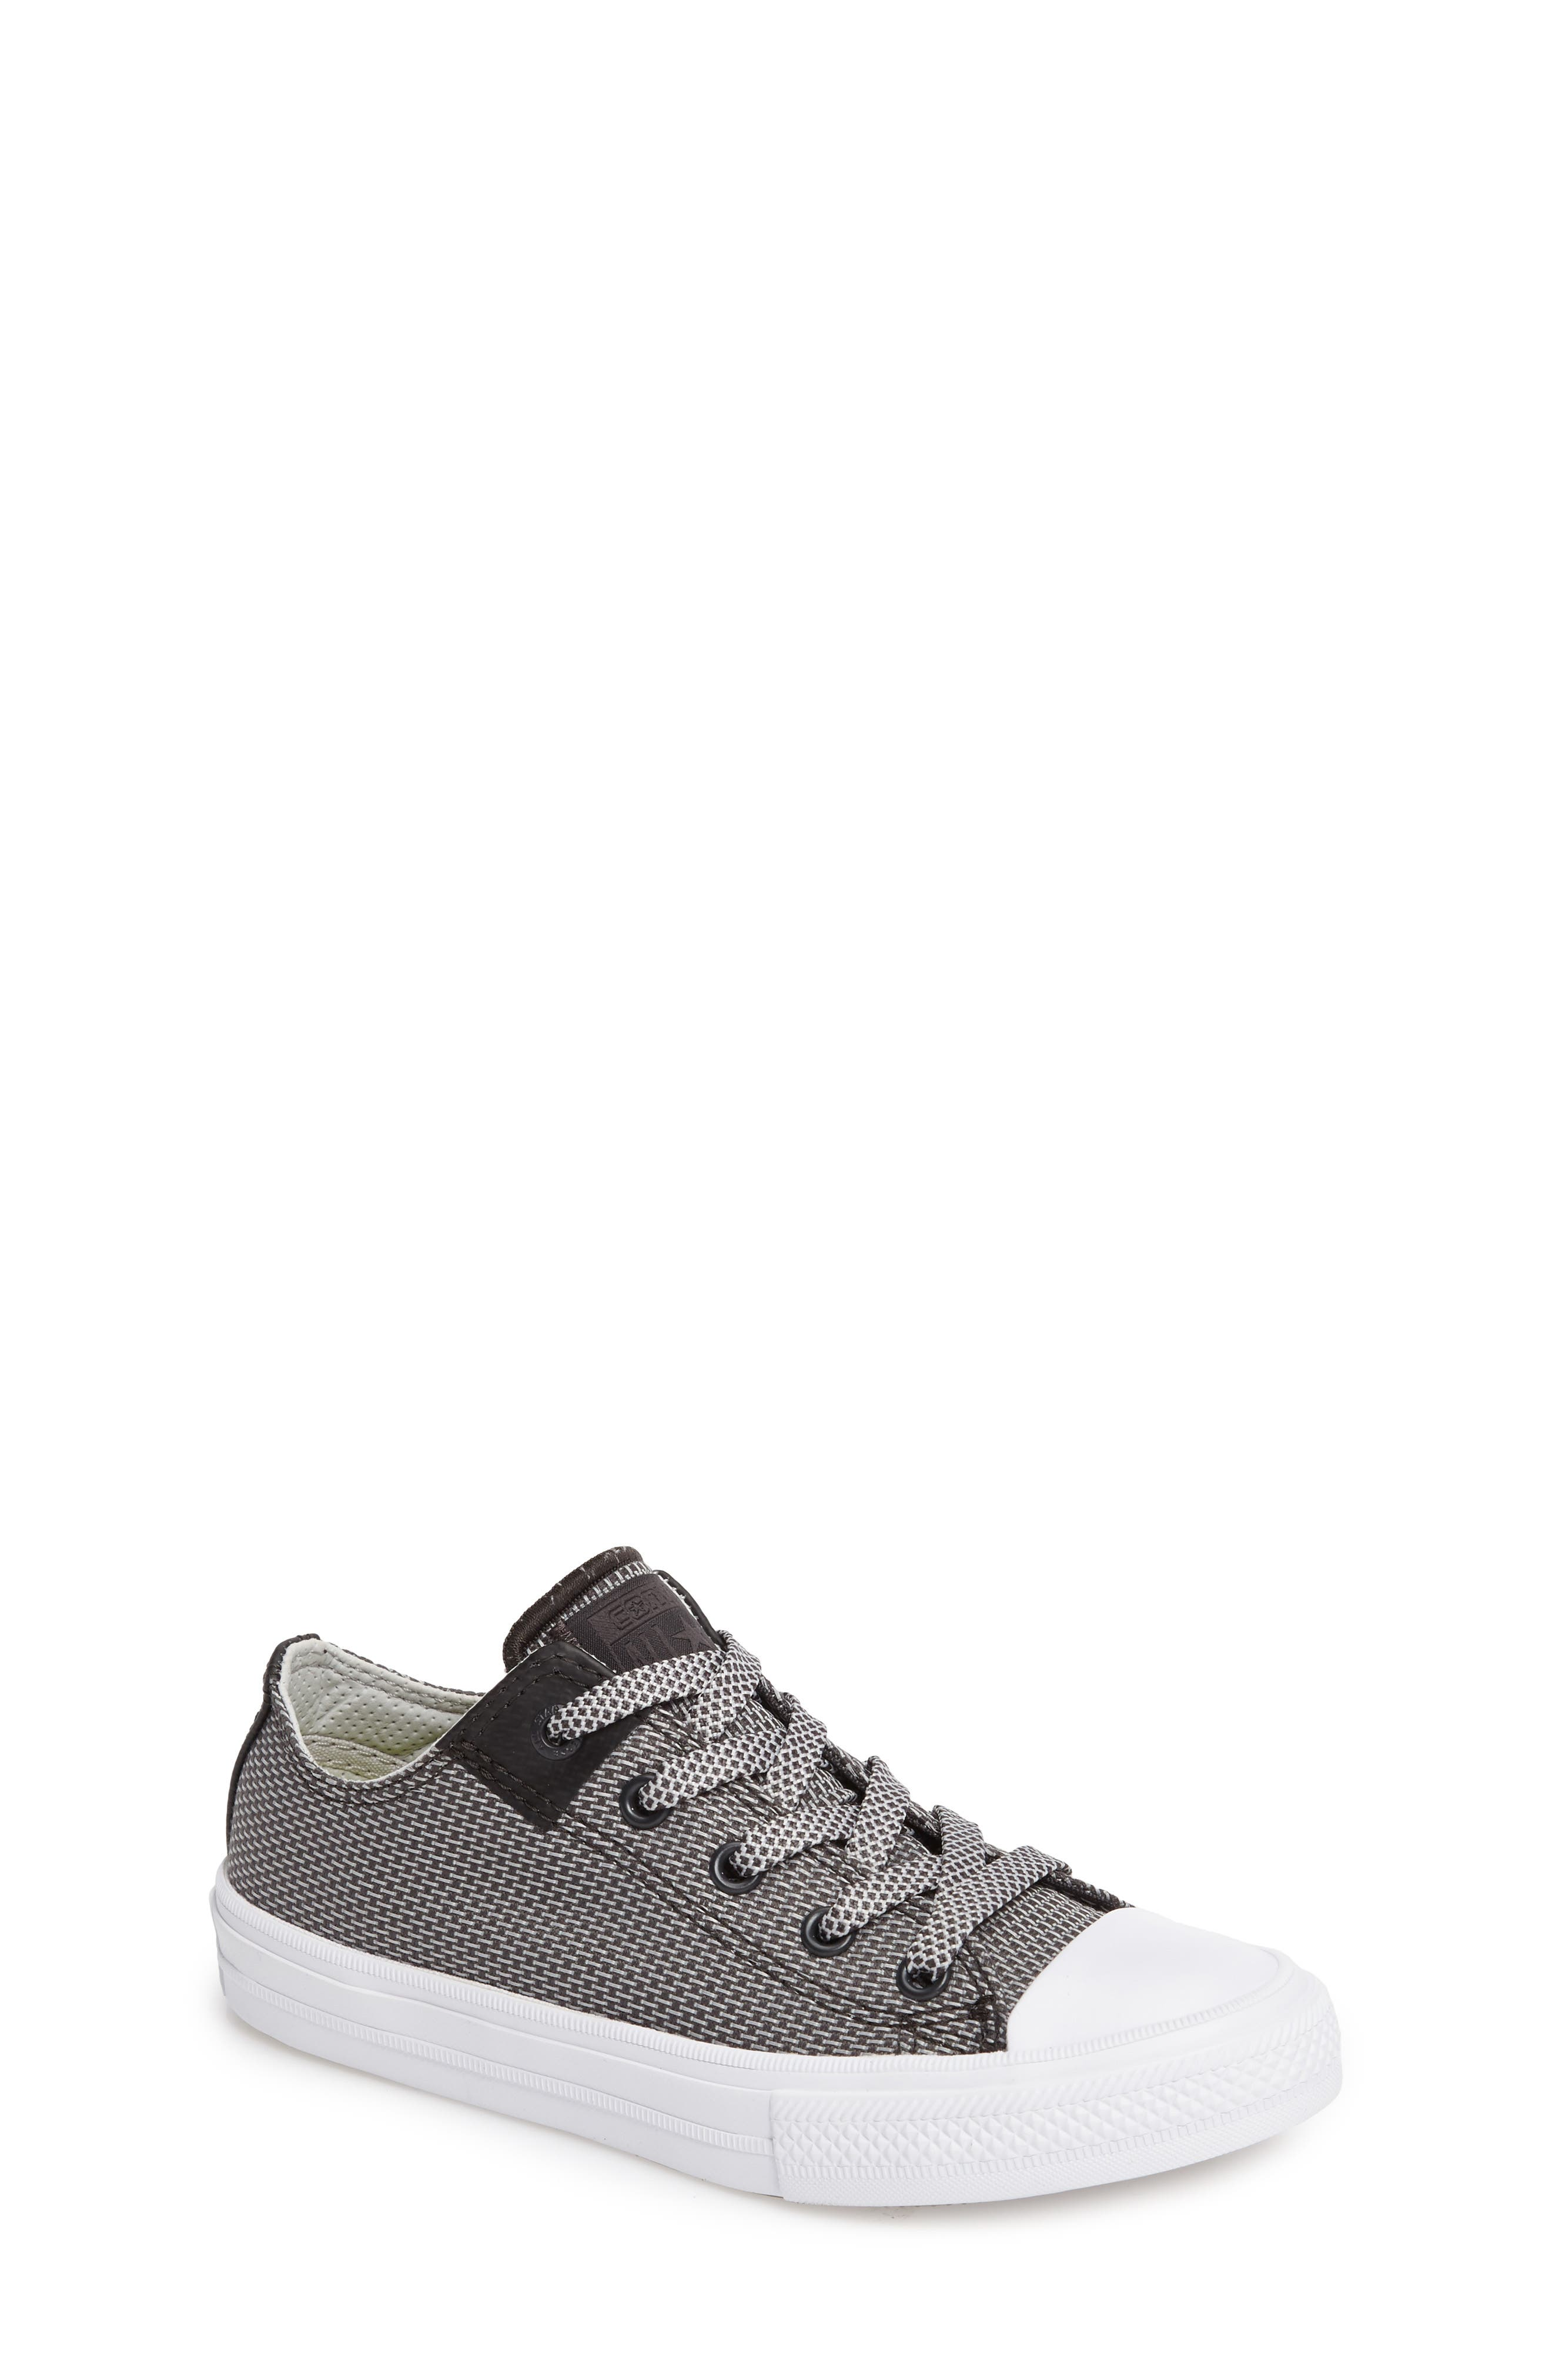 CONVERSE Chuck Taylor<sup>®</sup> All Star<sup>®</sup> II Basket Weave Ox Sneaker